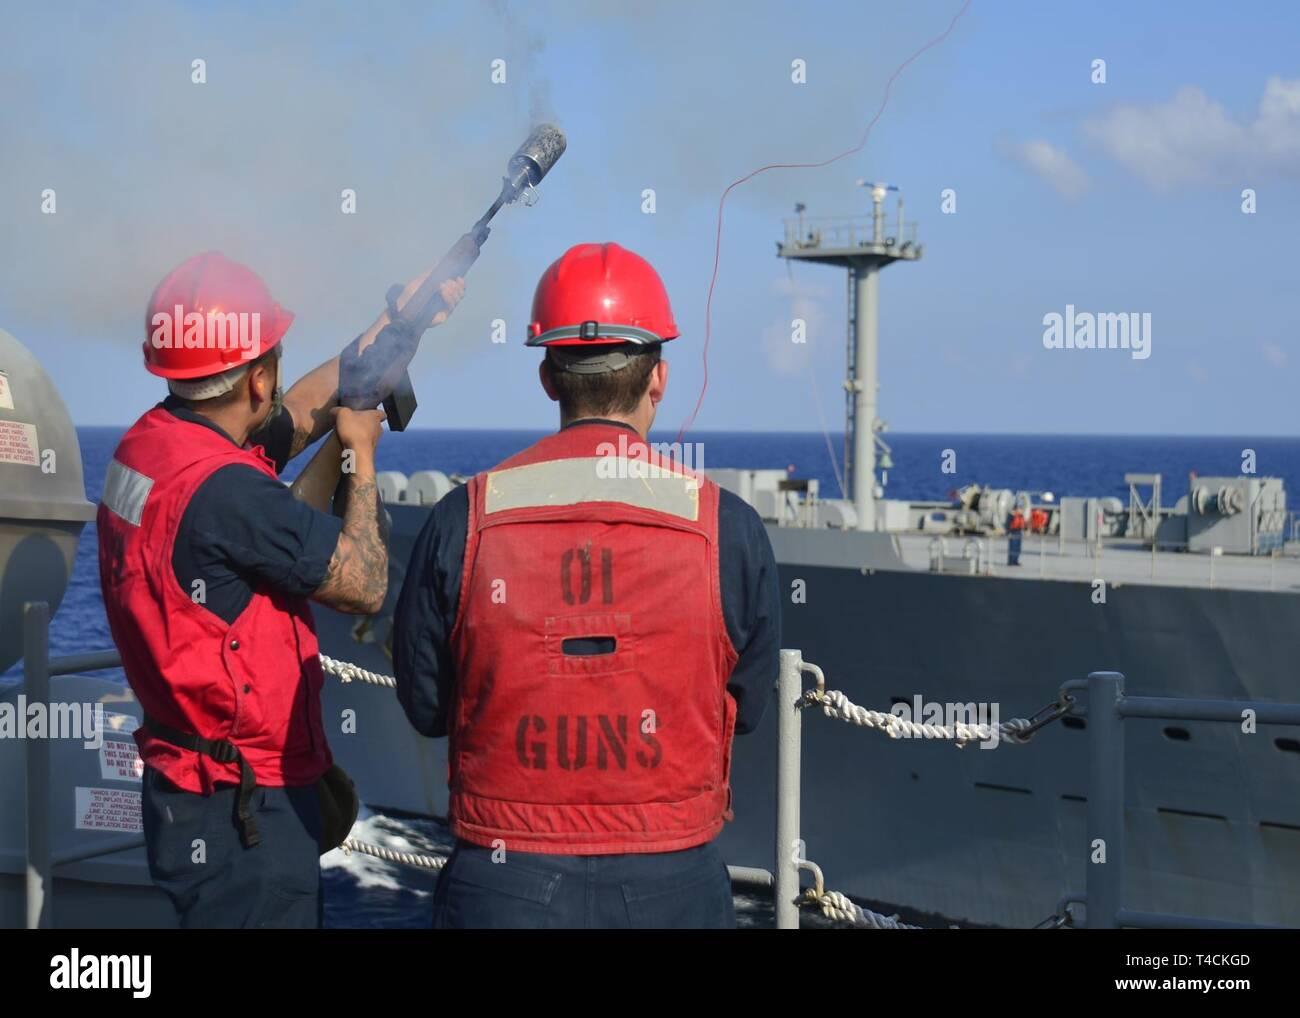 SOUTH CHINA SEA (March 20, 2019) - Gunner's Mate 3rd Class Erik Renteria, from Richardson, Texas., fires line to Fleet Replenishment Oiler USNS Guadalupe (T-AO 200) during a replenishment-at-sea with U.S. 7th Fleet Flagship USS Blue Ridge (LCC 19). Blue Ridge is the oldest operational ship in the Navy and, as 7th Fleet command ship, actively works to foster relationships with allies and partners in the Indo-Pacific Region. - Stock Image